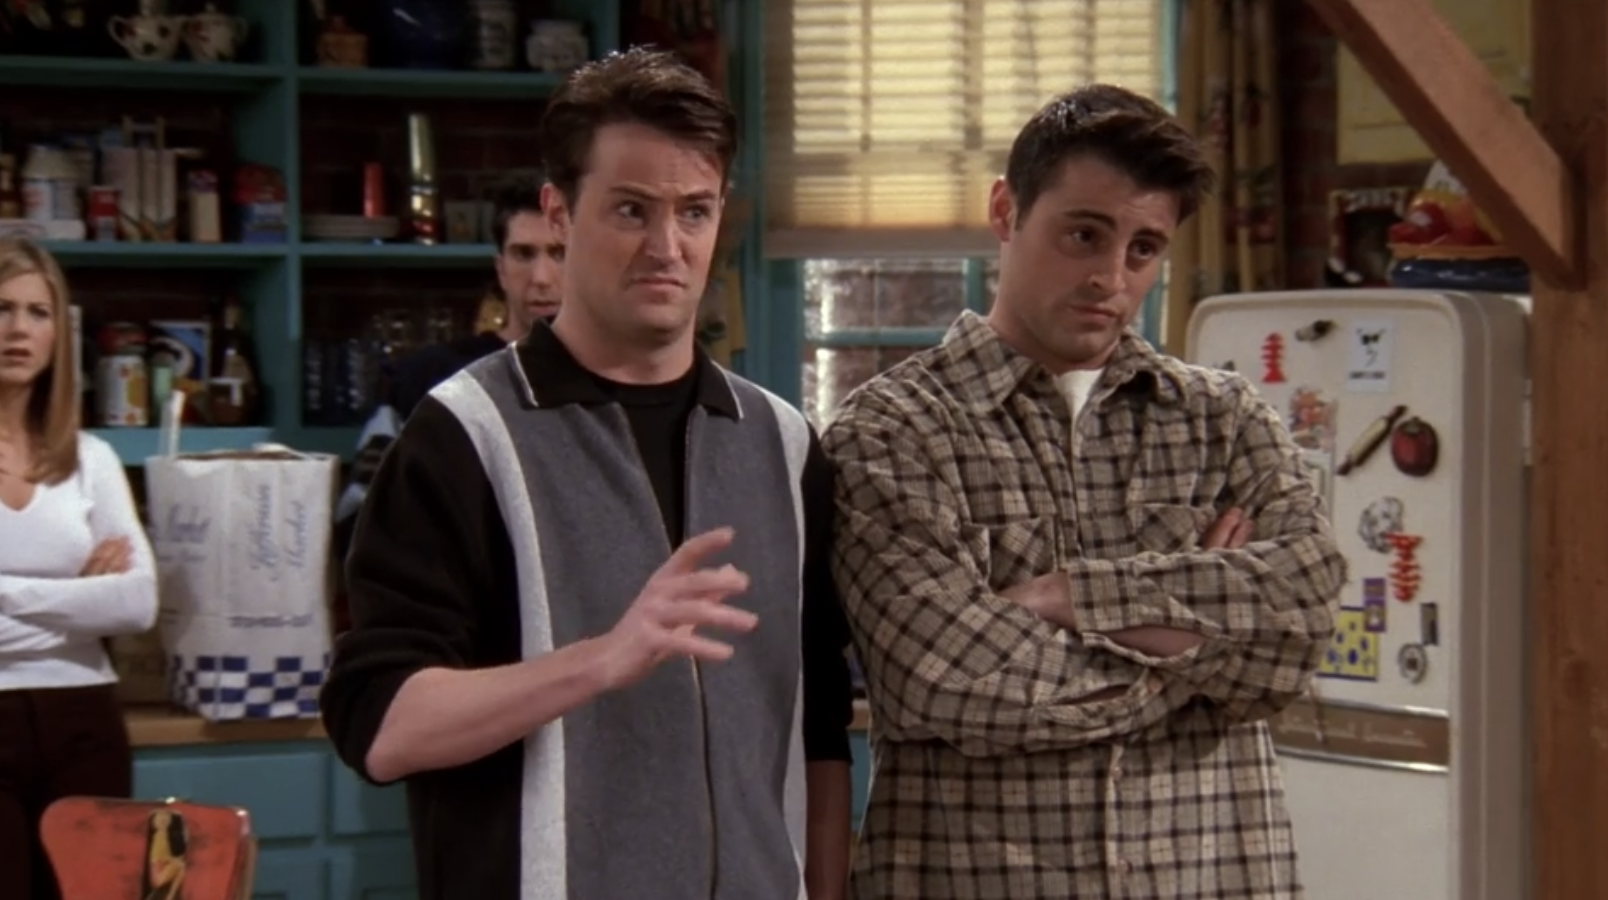 Chandler and Joey saying they know Rachel and Monica so well